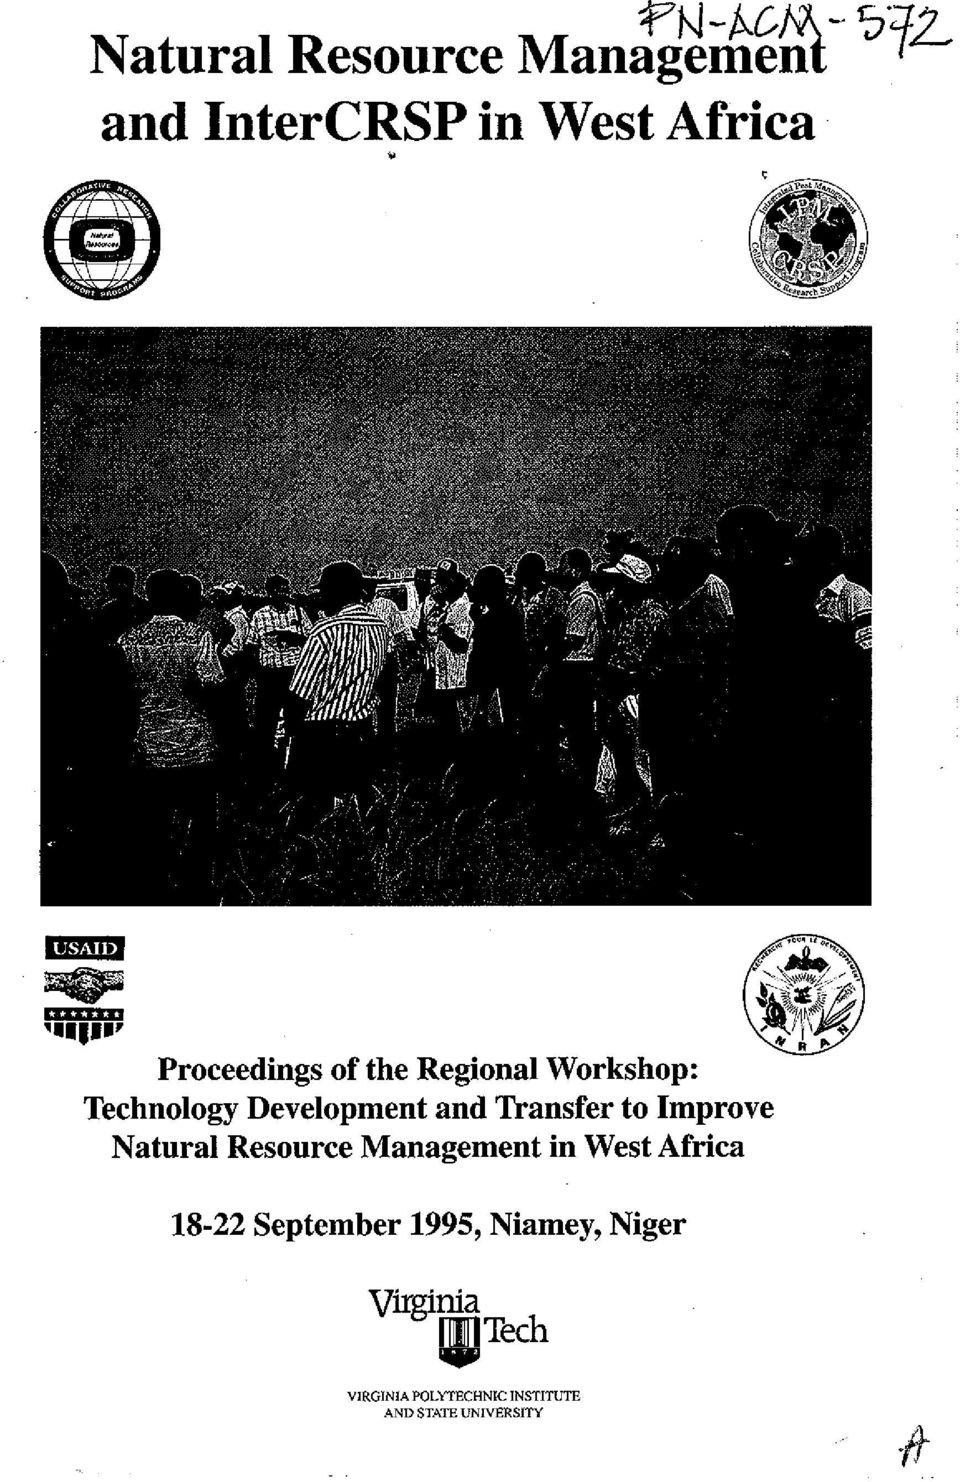 Improve Natural Resource Management in West Africa 18-22 September 1995,